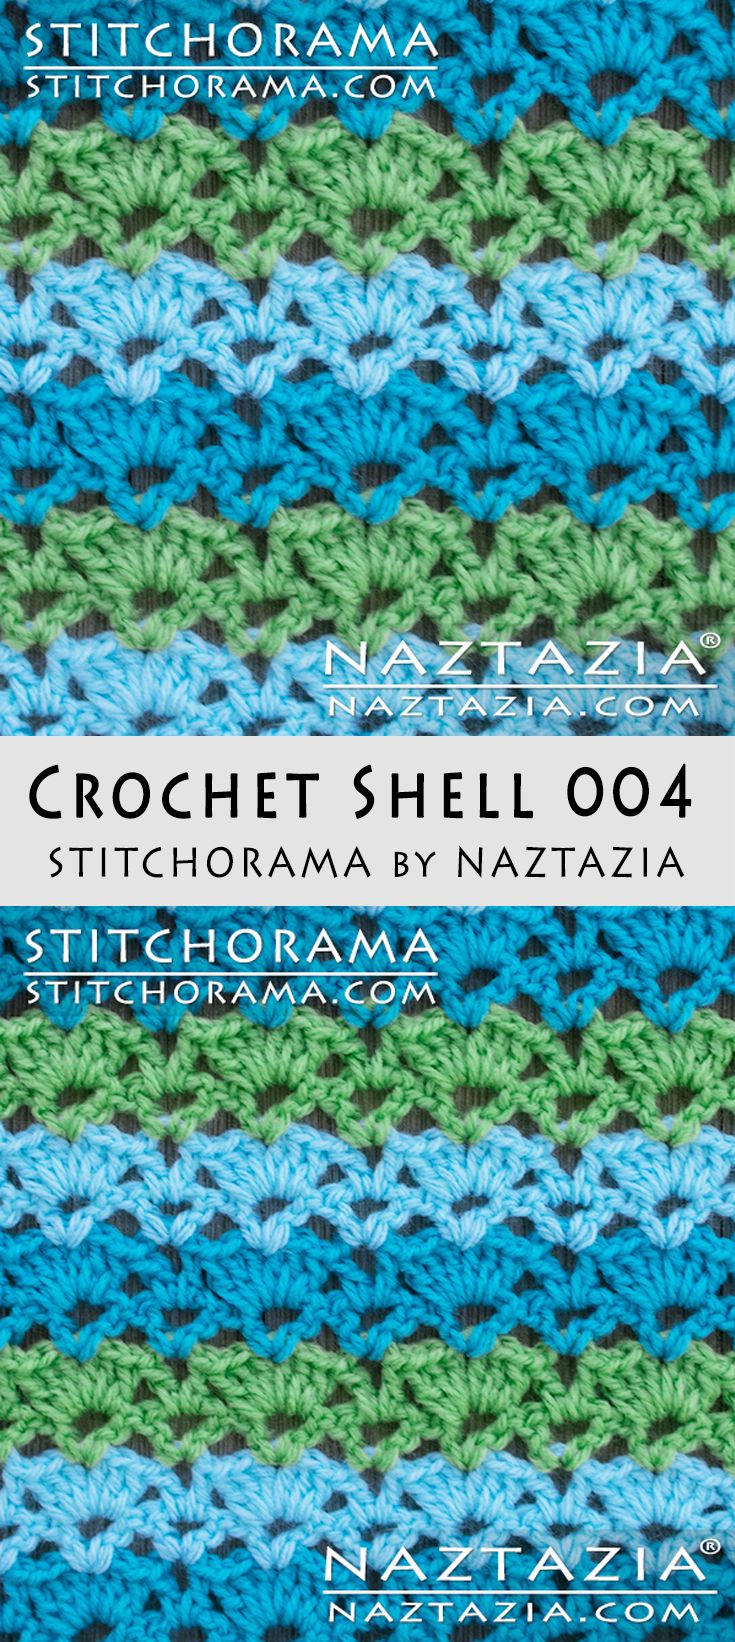 Crochet Shell 004 - Stitchorama by Naztazia | Crochet | Pinterest ...